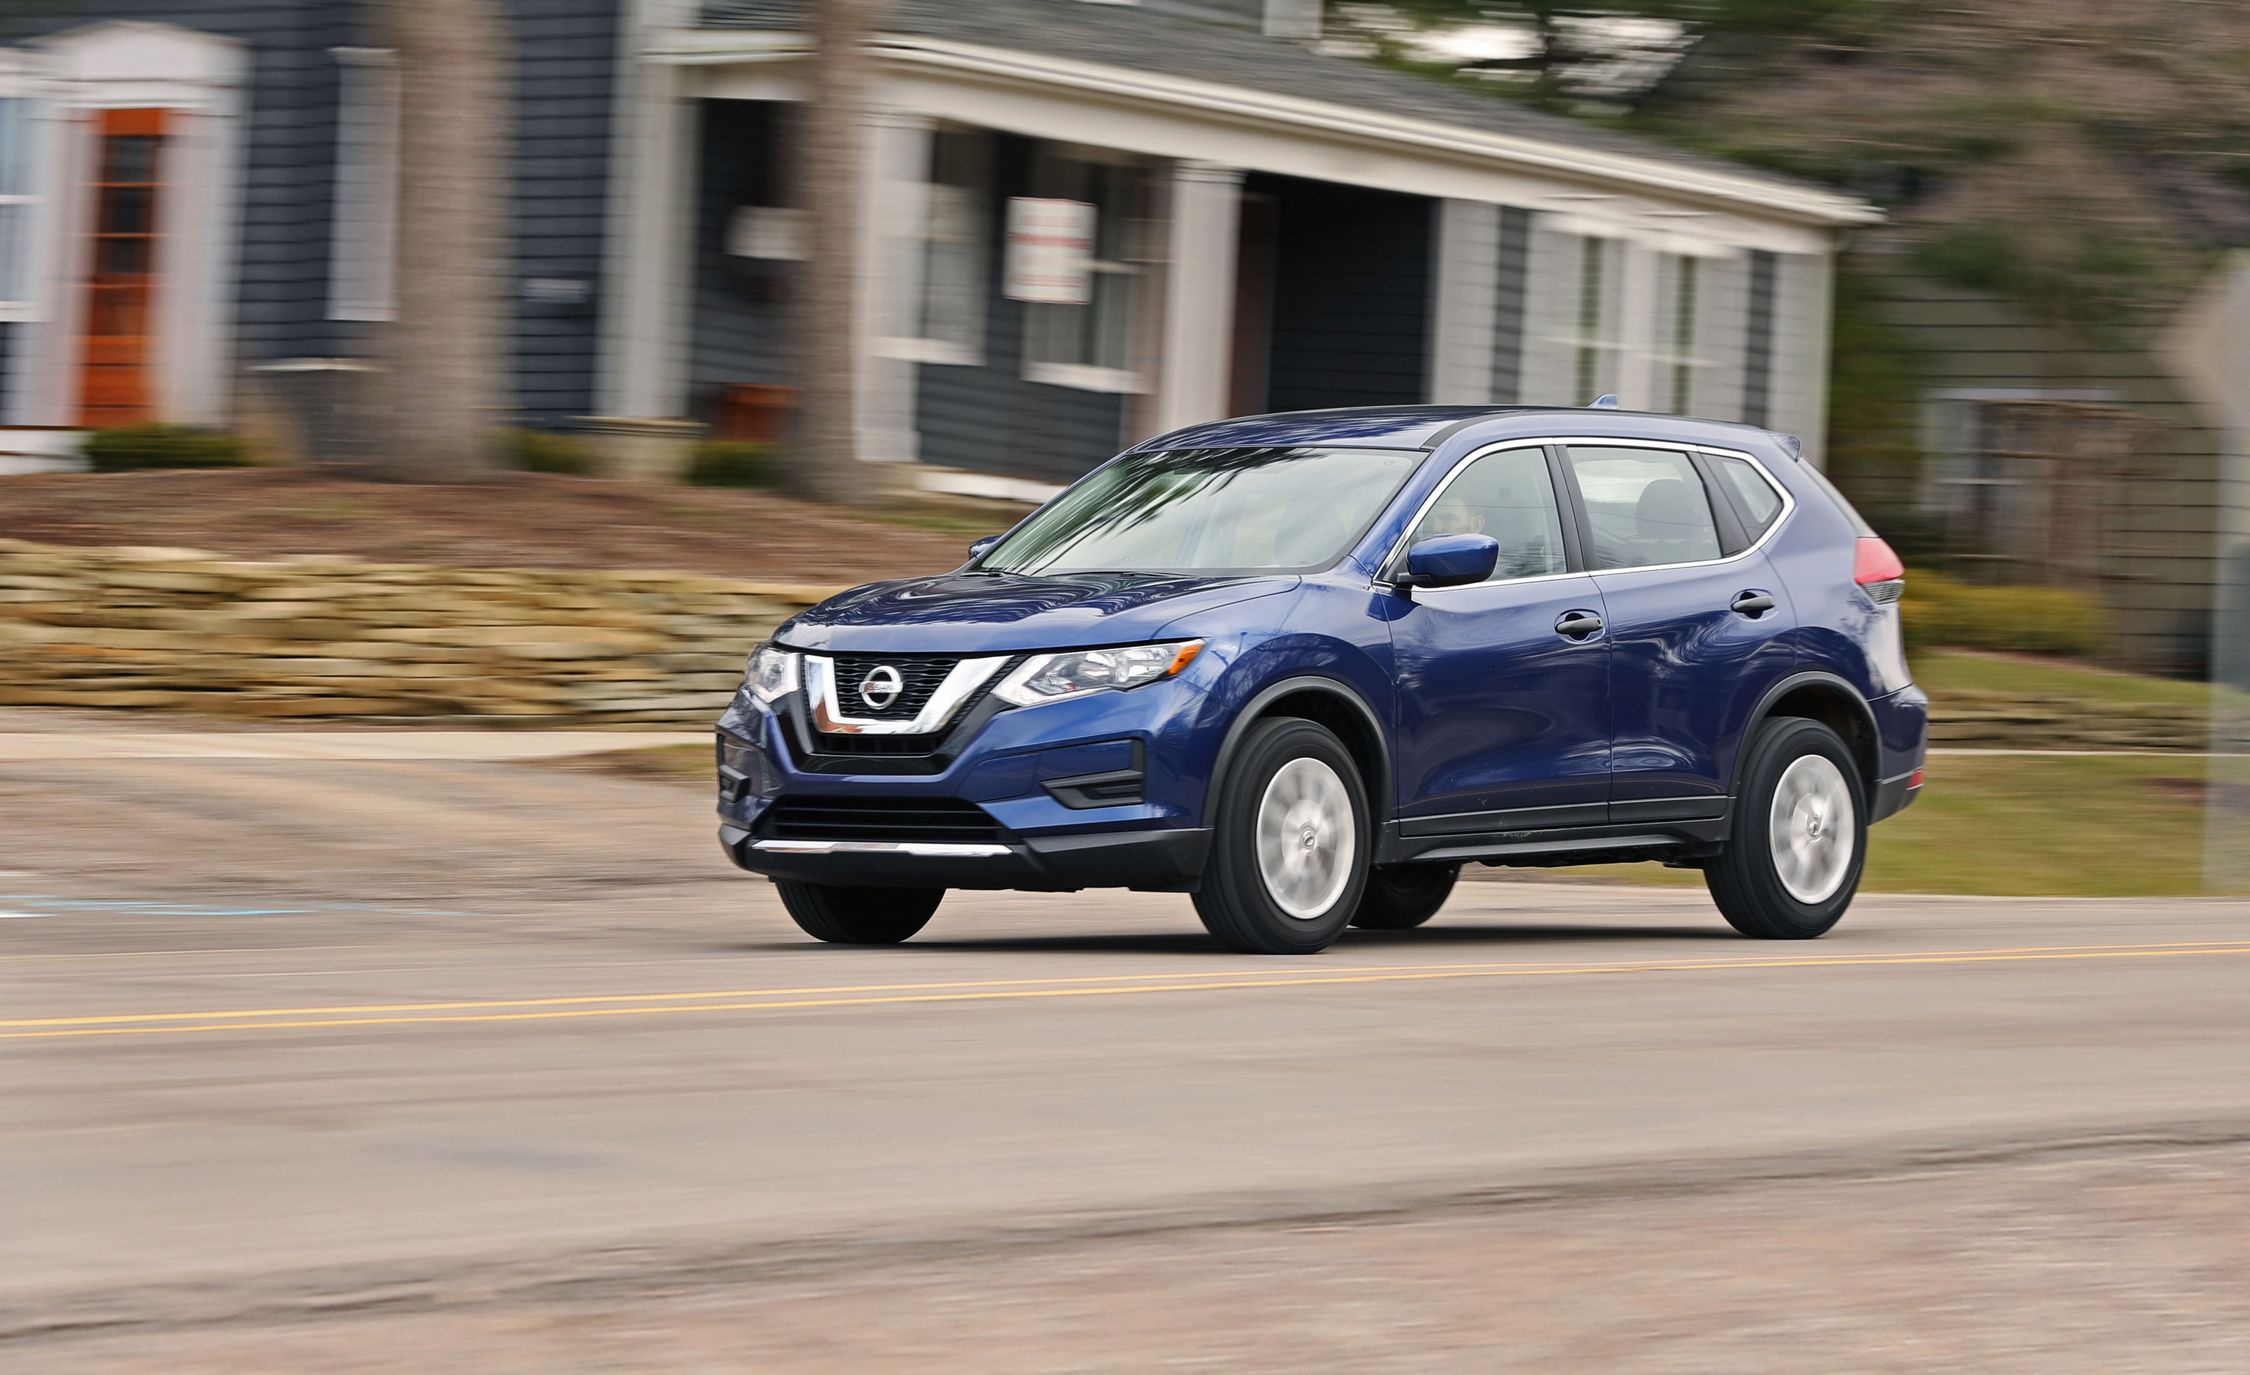 Nissan Rogue Reviews | Nissan Rogue Price, Photos, And Specs | Car And  Driver